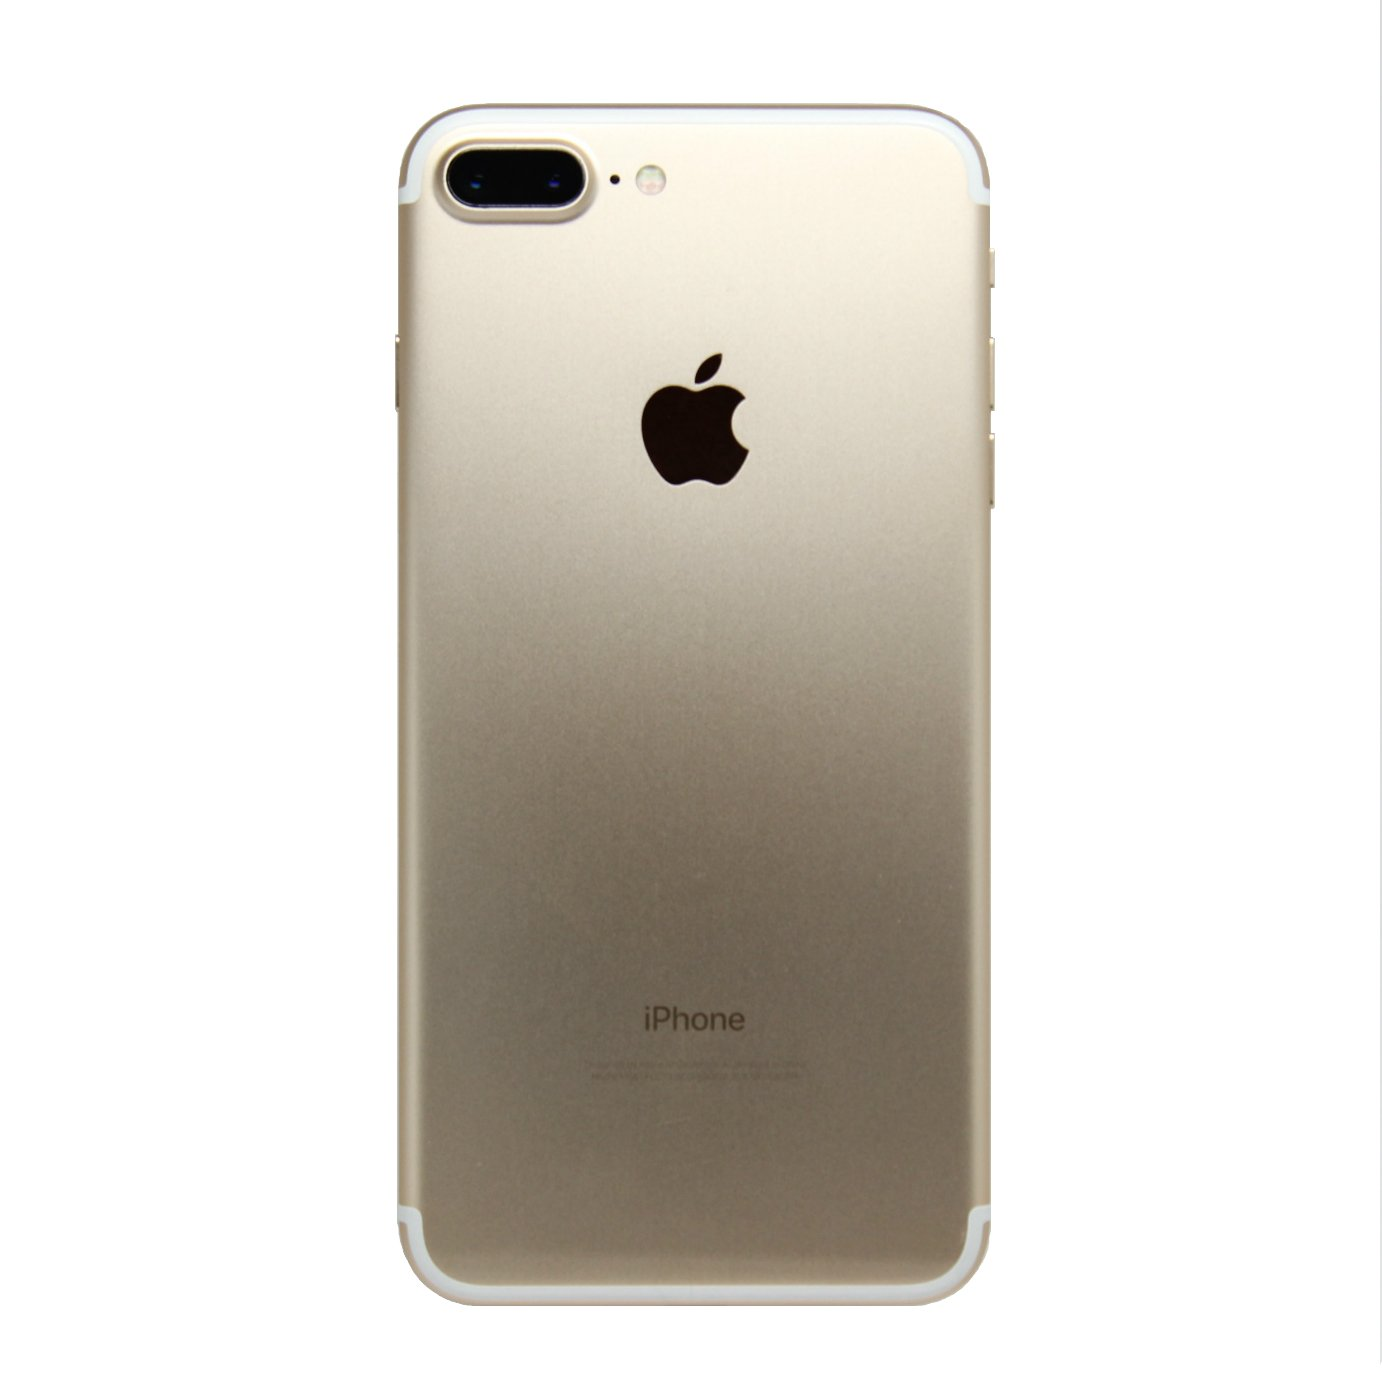 Apple iPhone 7 Plus, GSM Unlocked, 32GB - Gold (Certified Refurbished) by Apple (Image #2)